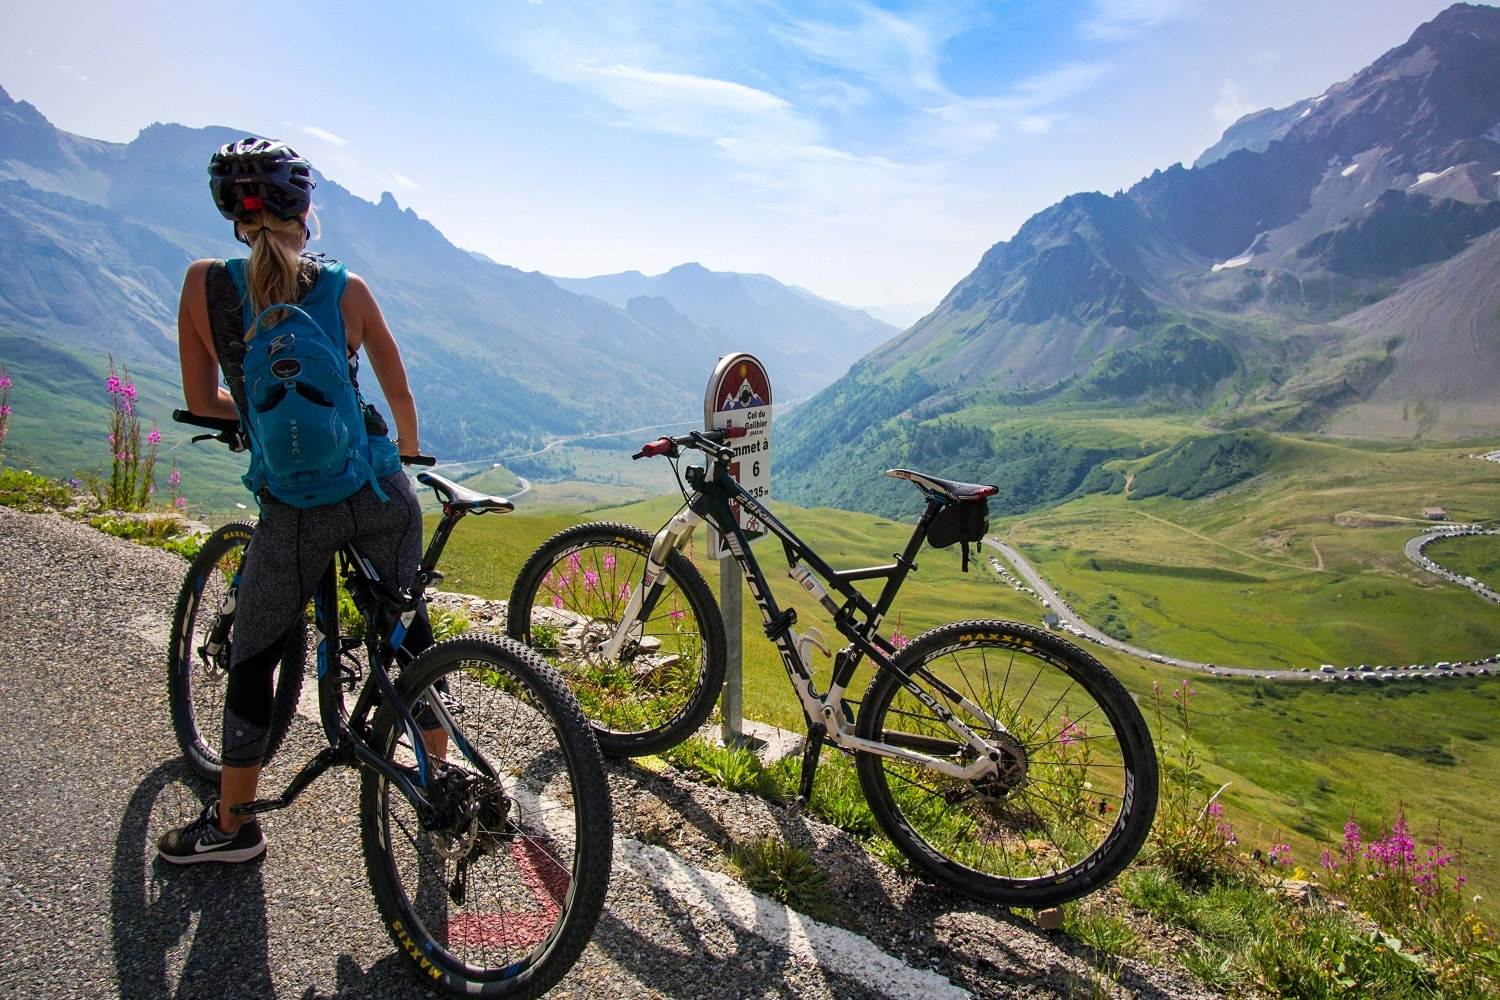 french_Alps_bikes_valley-1-min